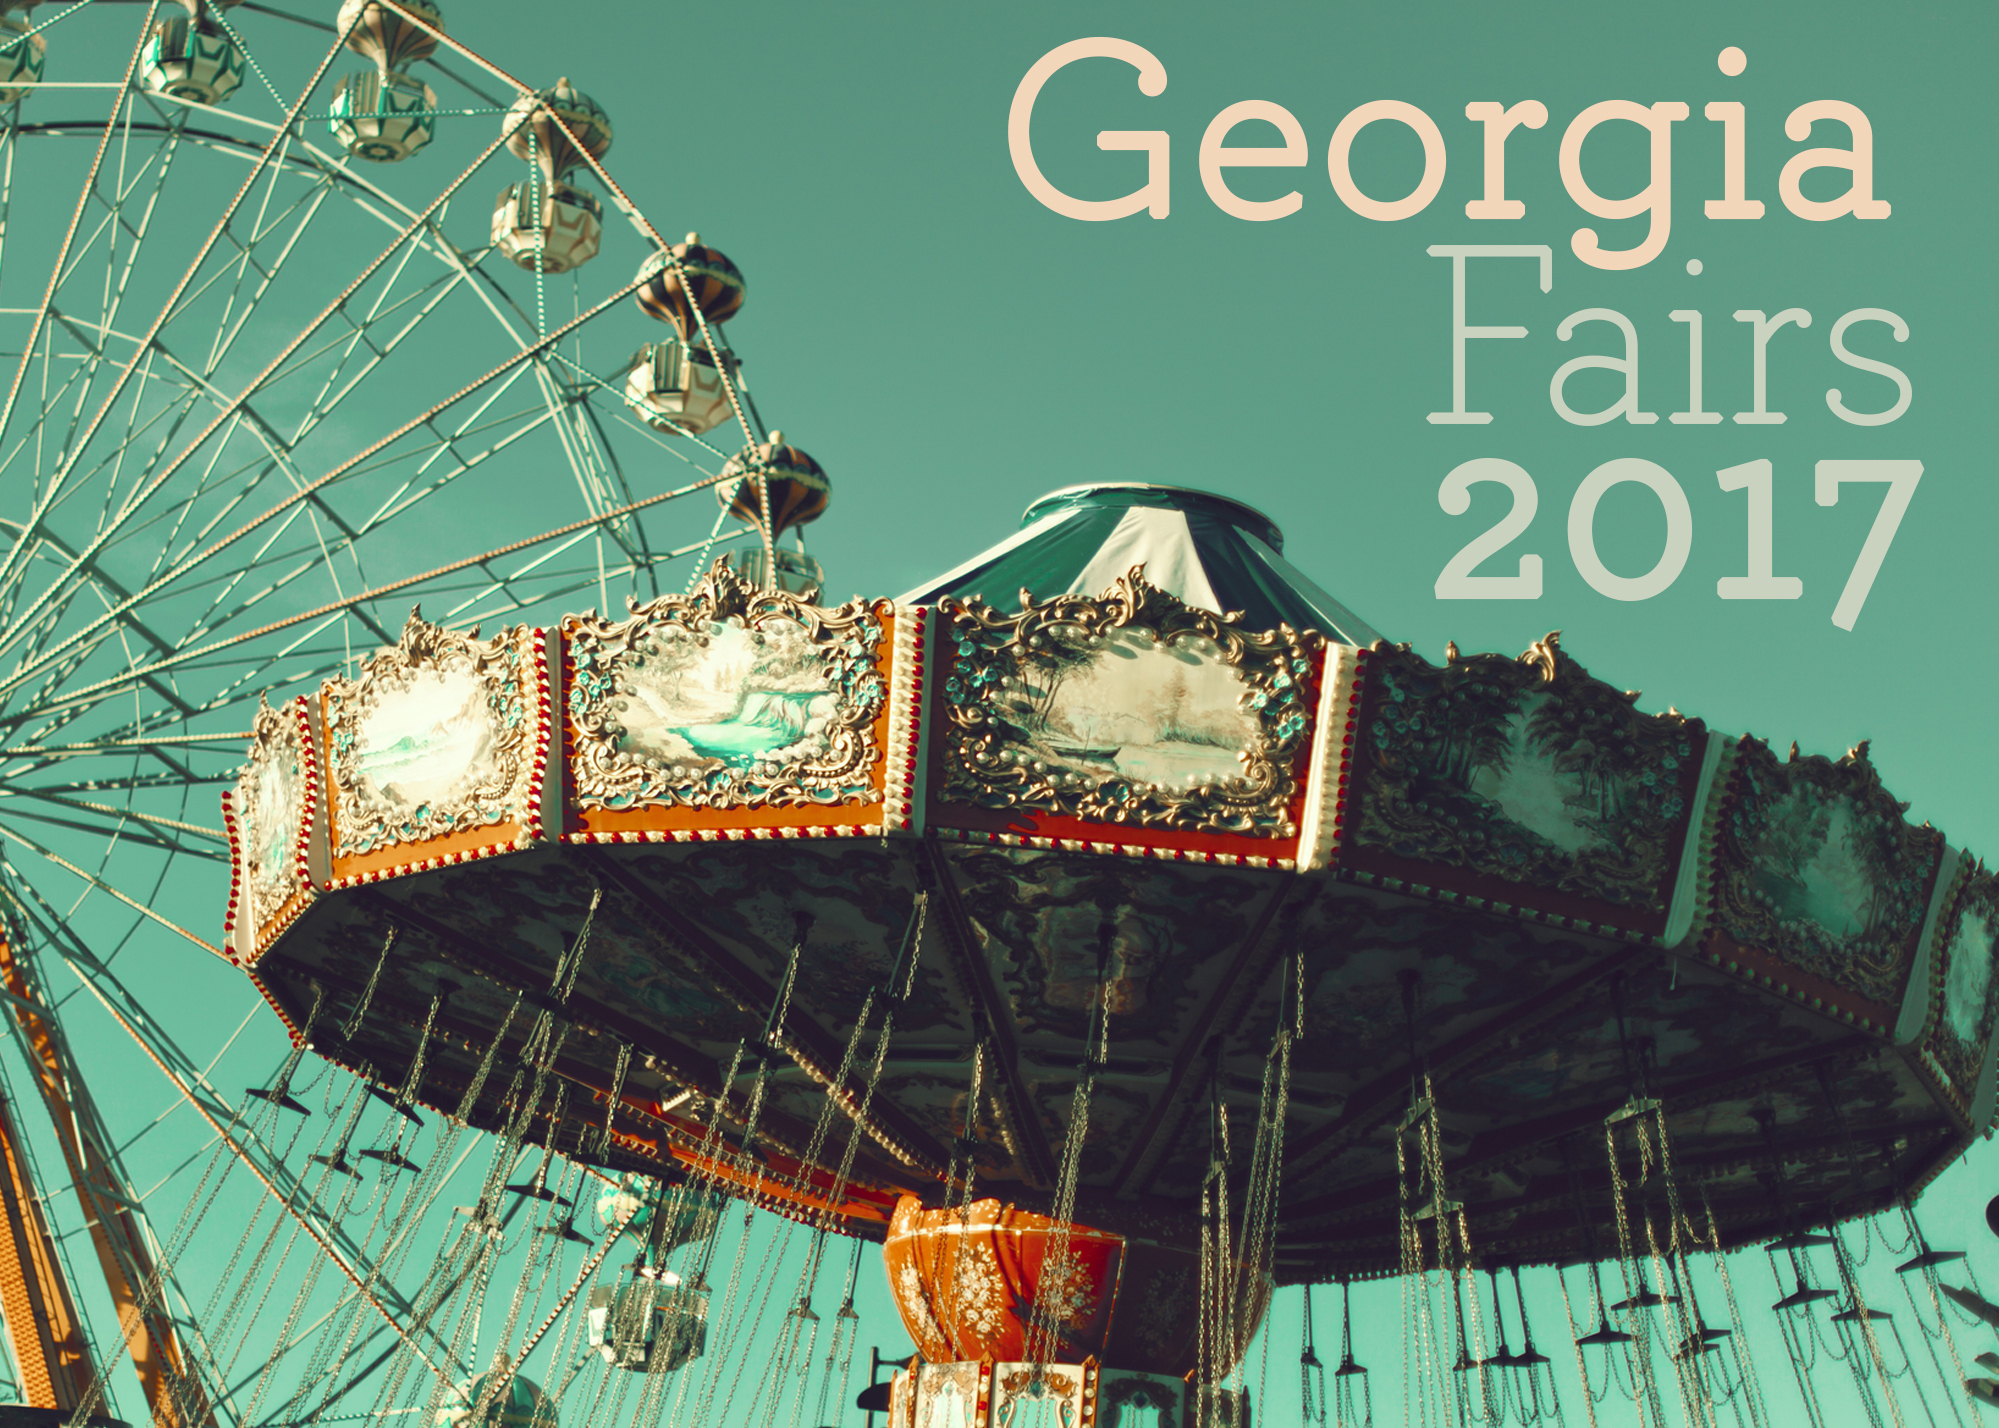 Enjoy a fair this Fall in Georgia 2017